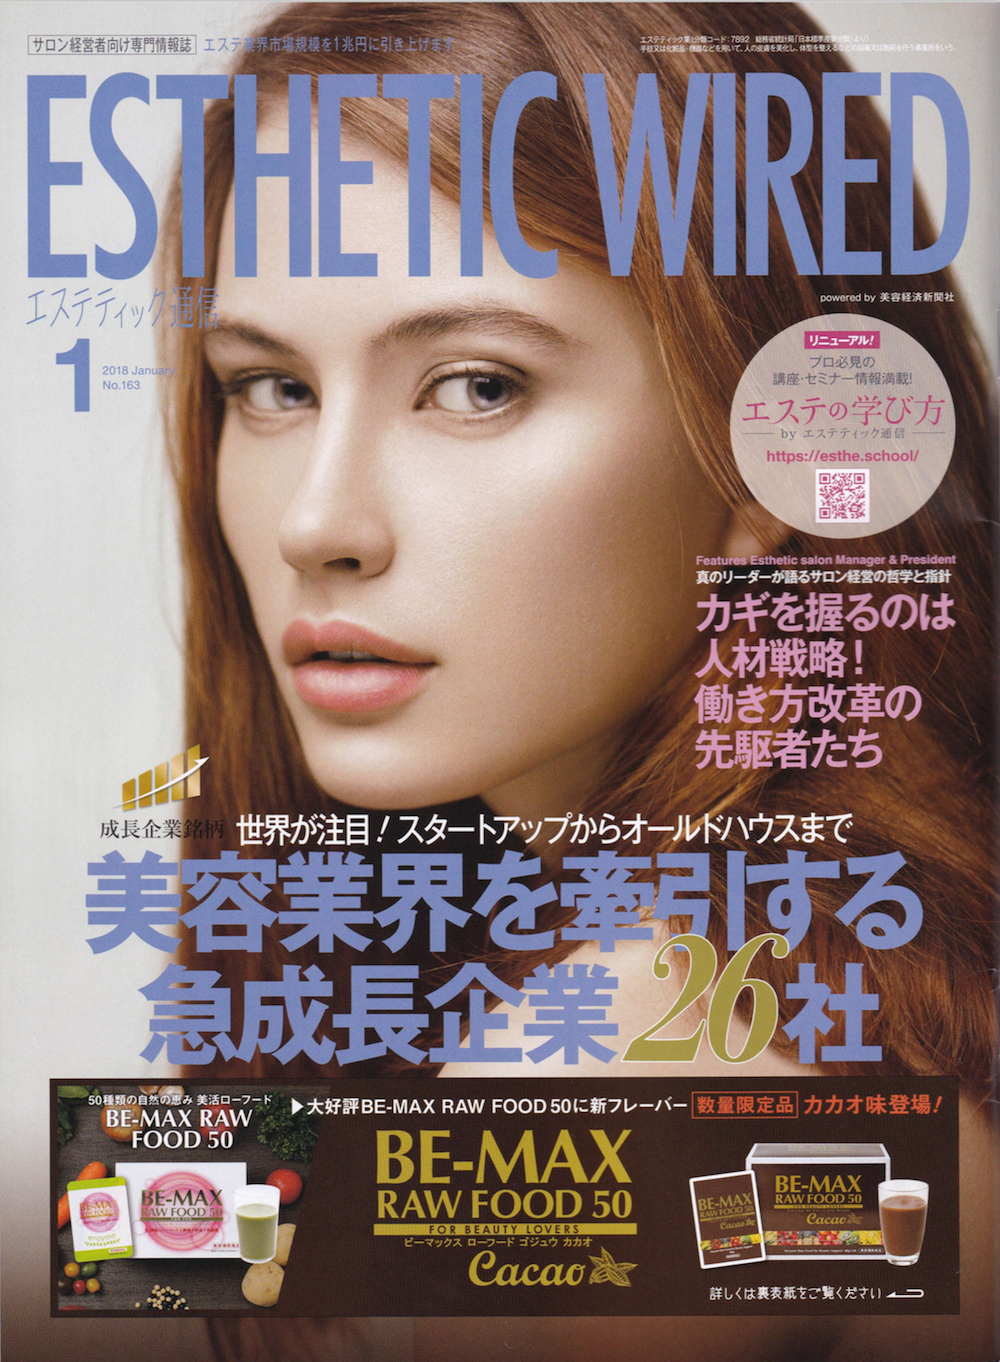 ESTHETIC WIRED 2018/1月号で弊社商品が紹介されました。